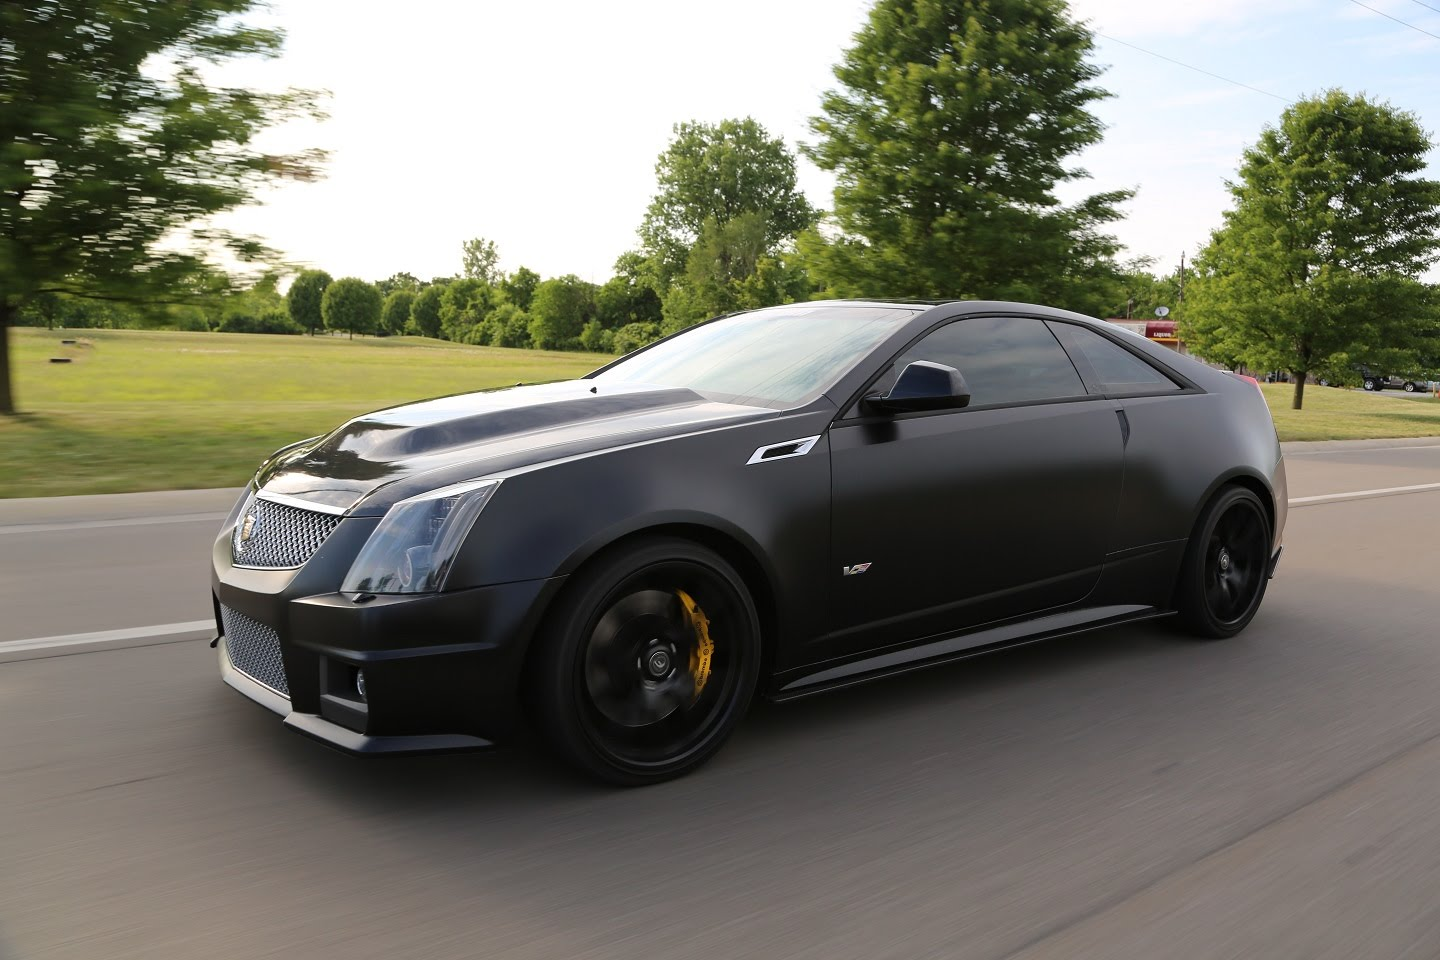 What its like owning a Cadillac CTS-V